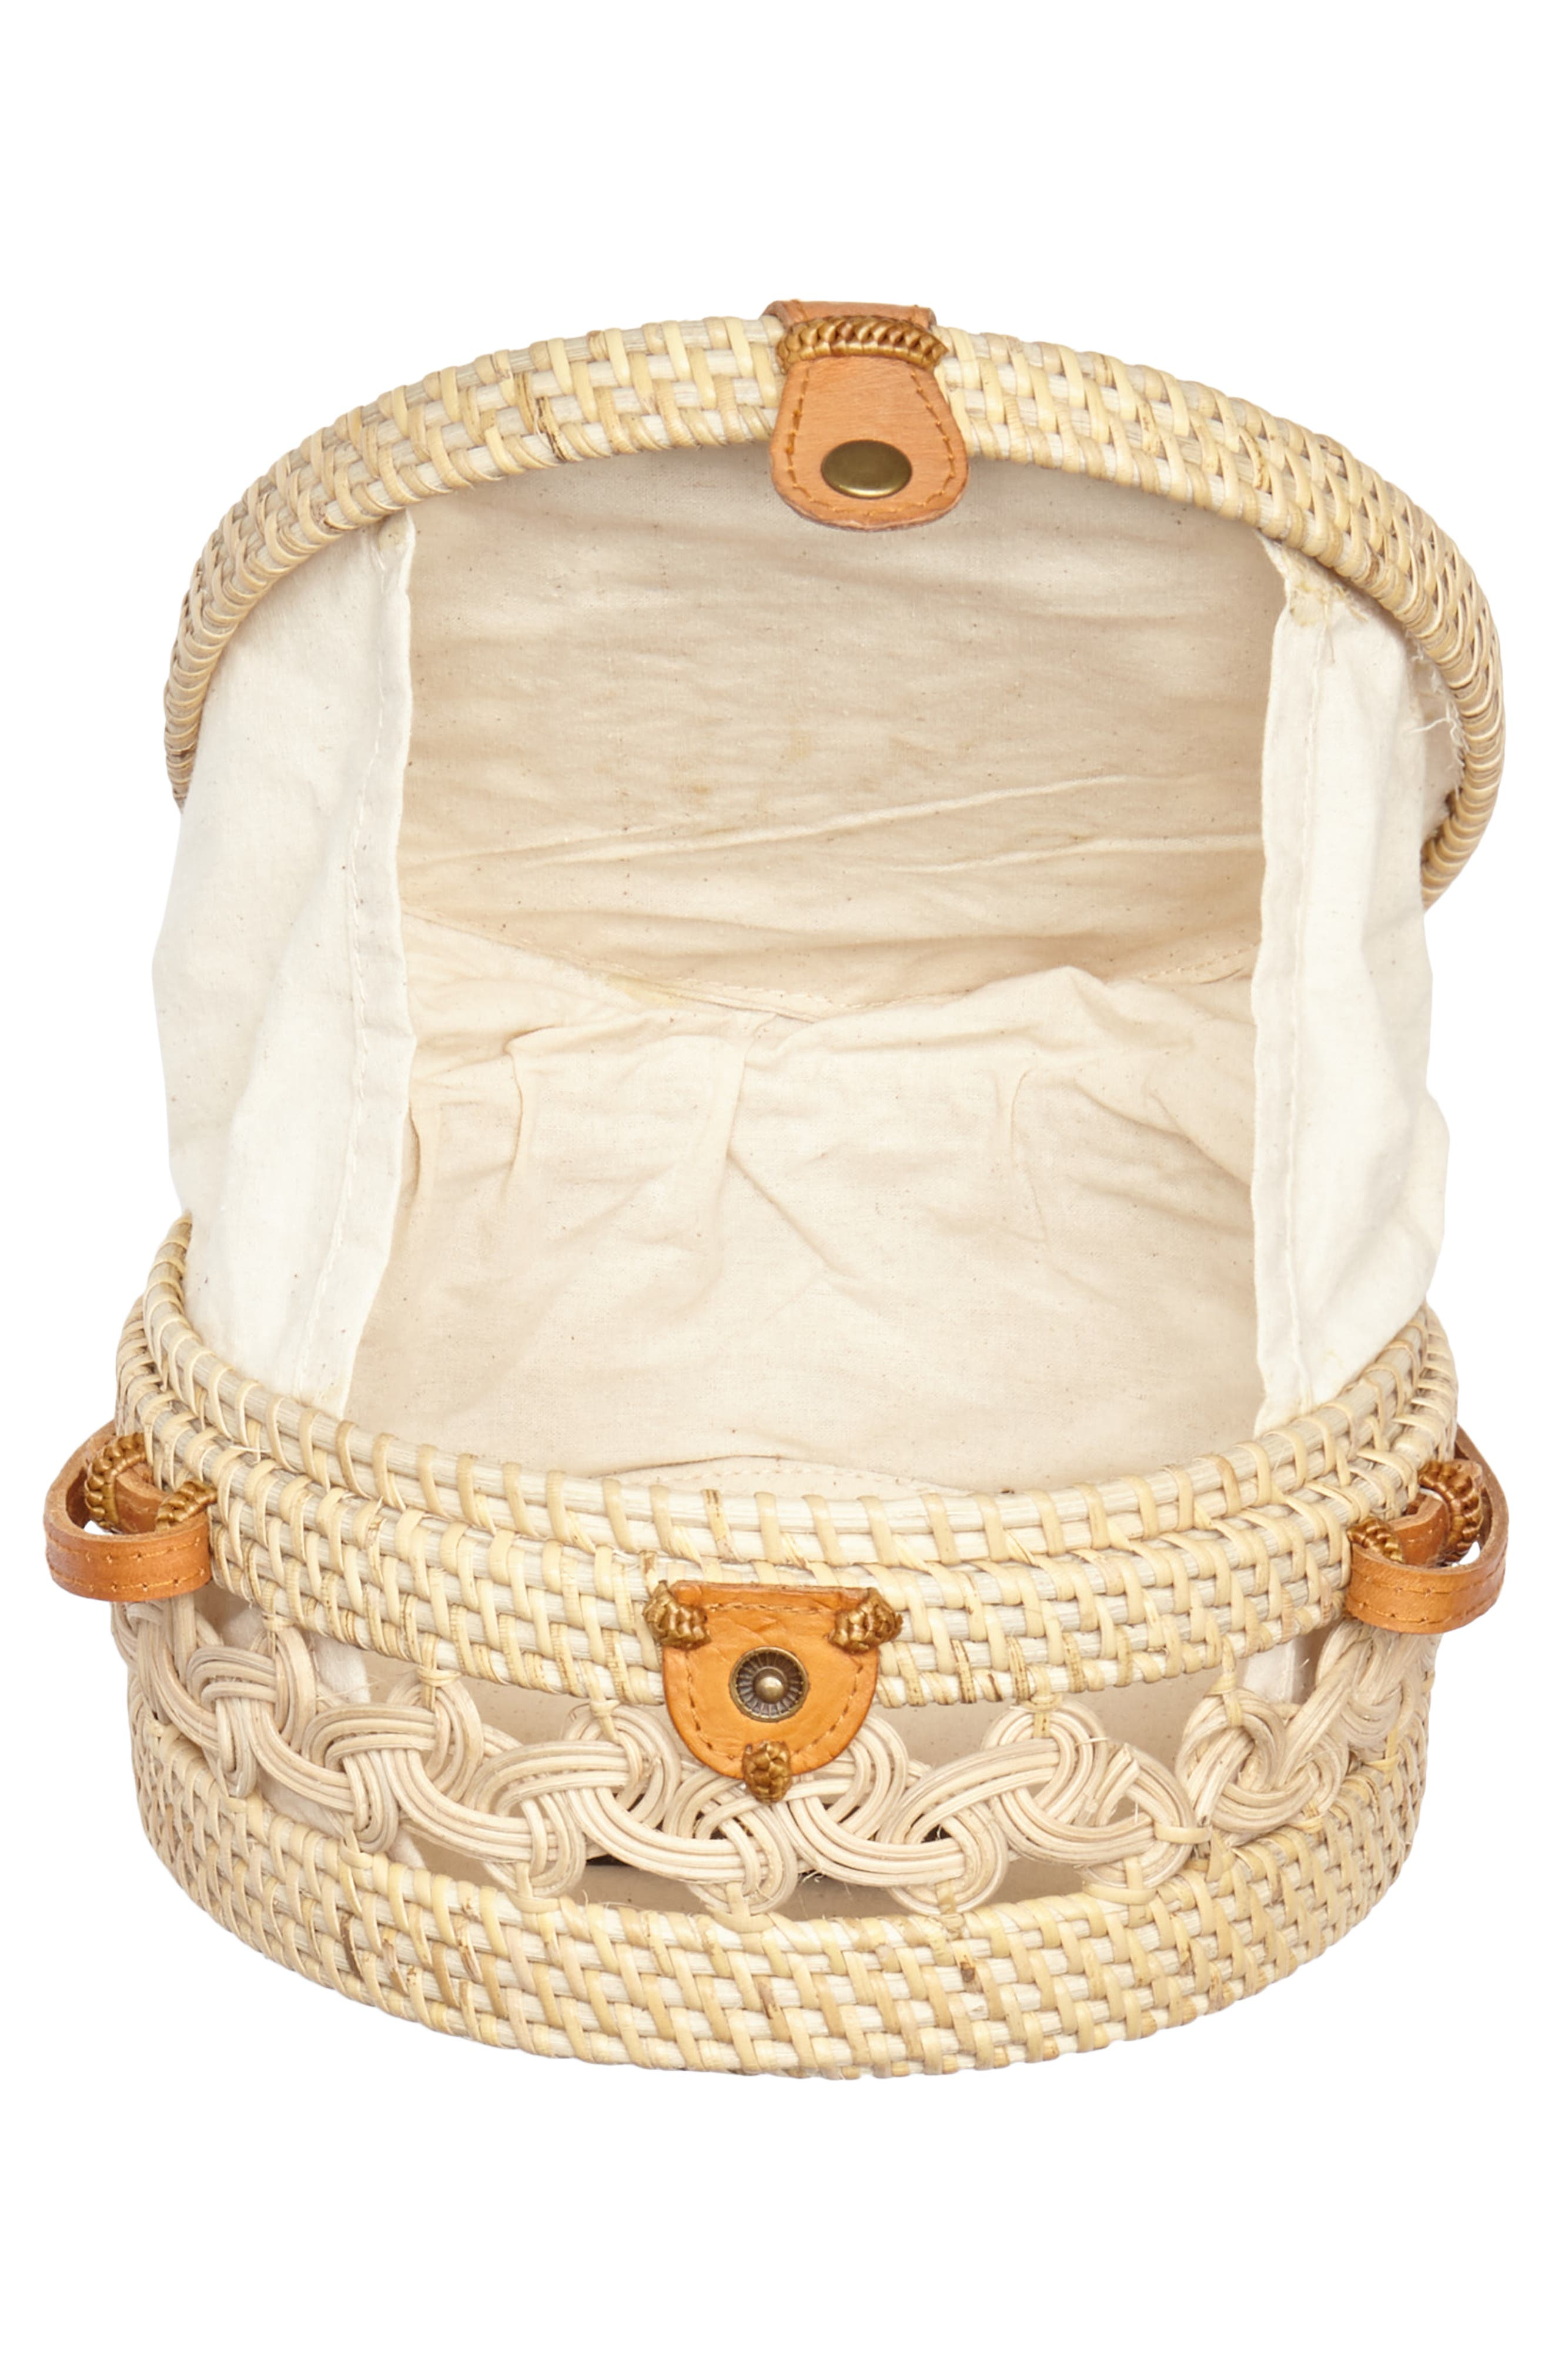 Woven Rattan Circle Crossbody Bag,                             Alternate thumbnail 4, color,                             LIGHTER TAN/ NATURAL